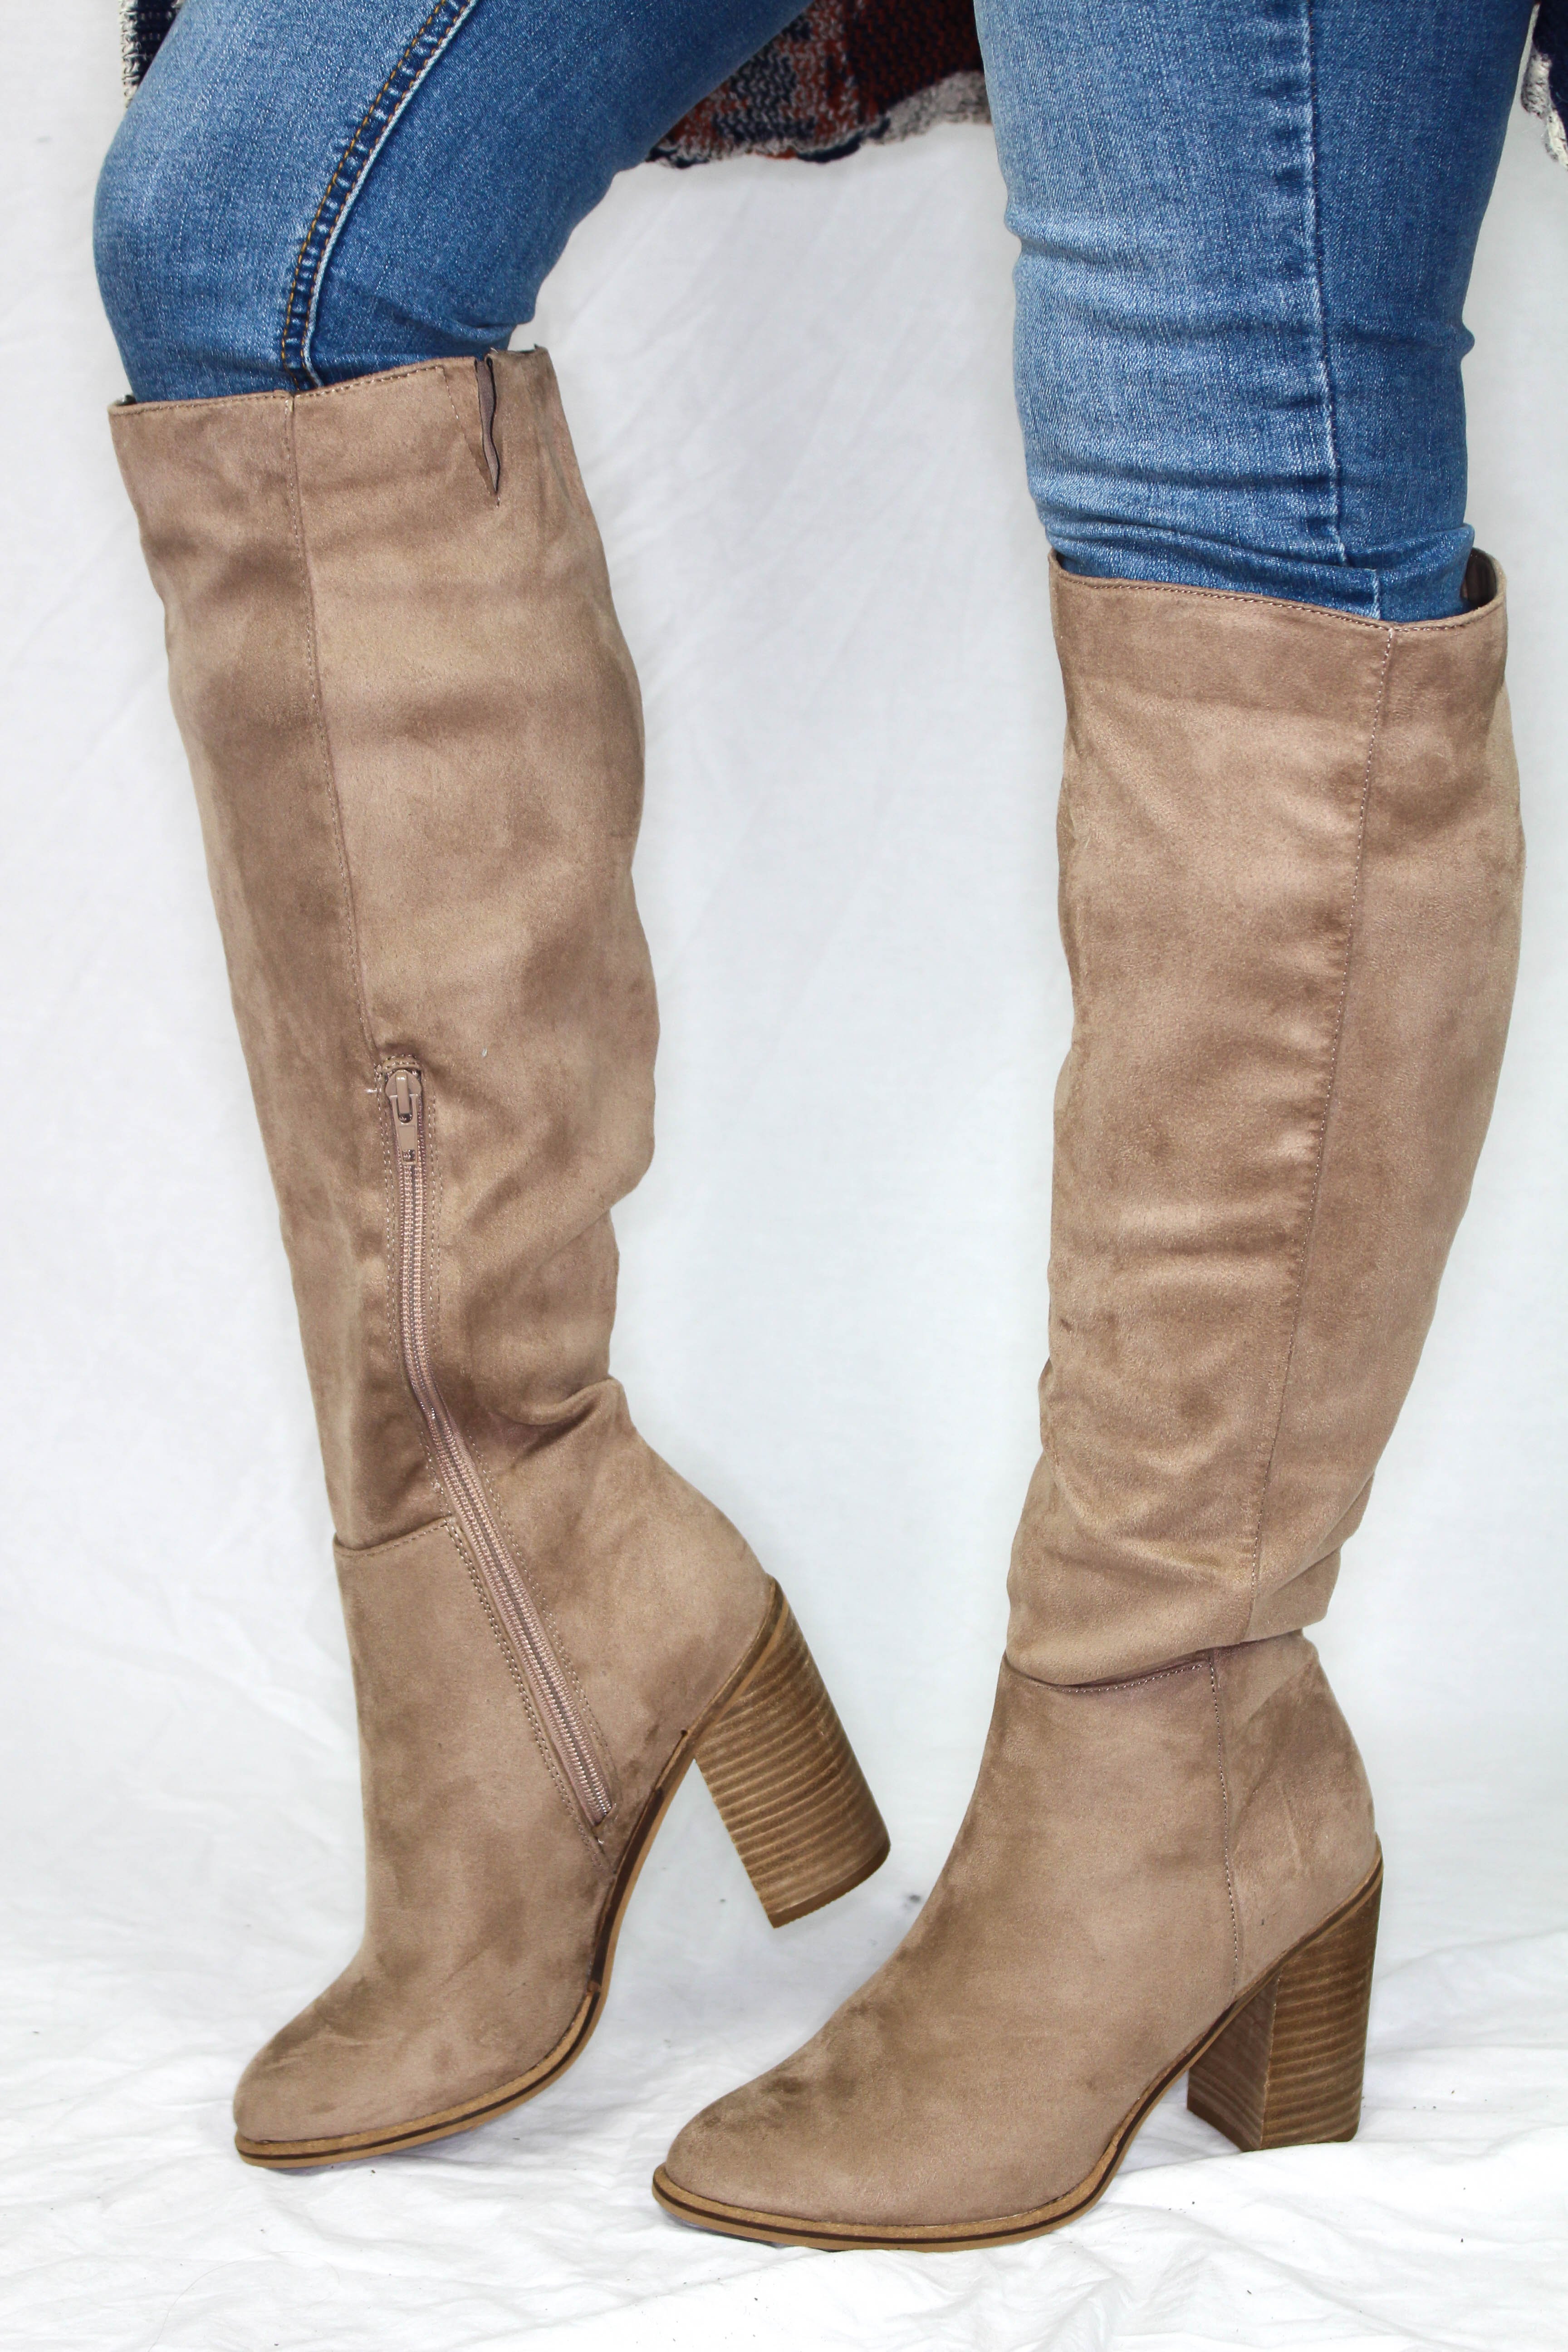 Levigno Knee High Boots